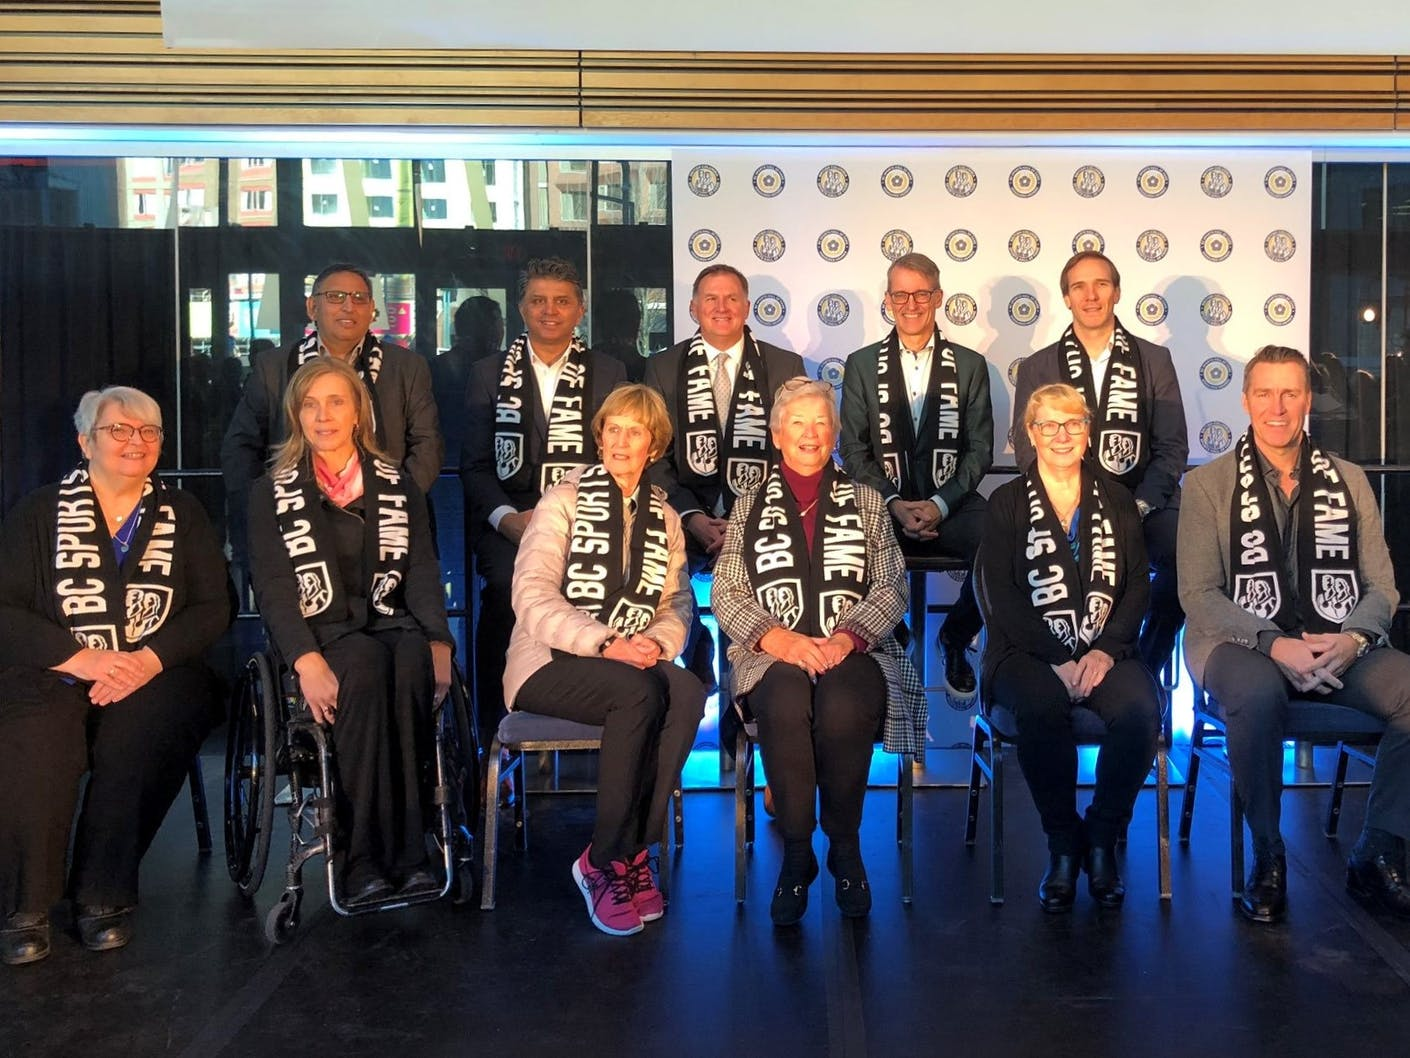 Bc Sports Hall Of Fame At Bc Place Announces Class Of 2020